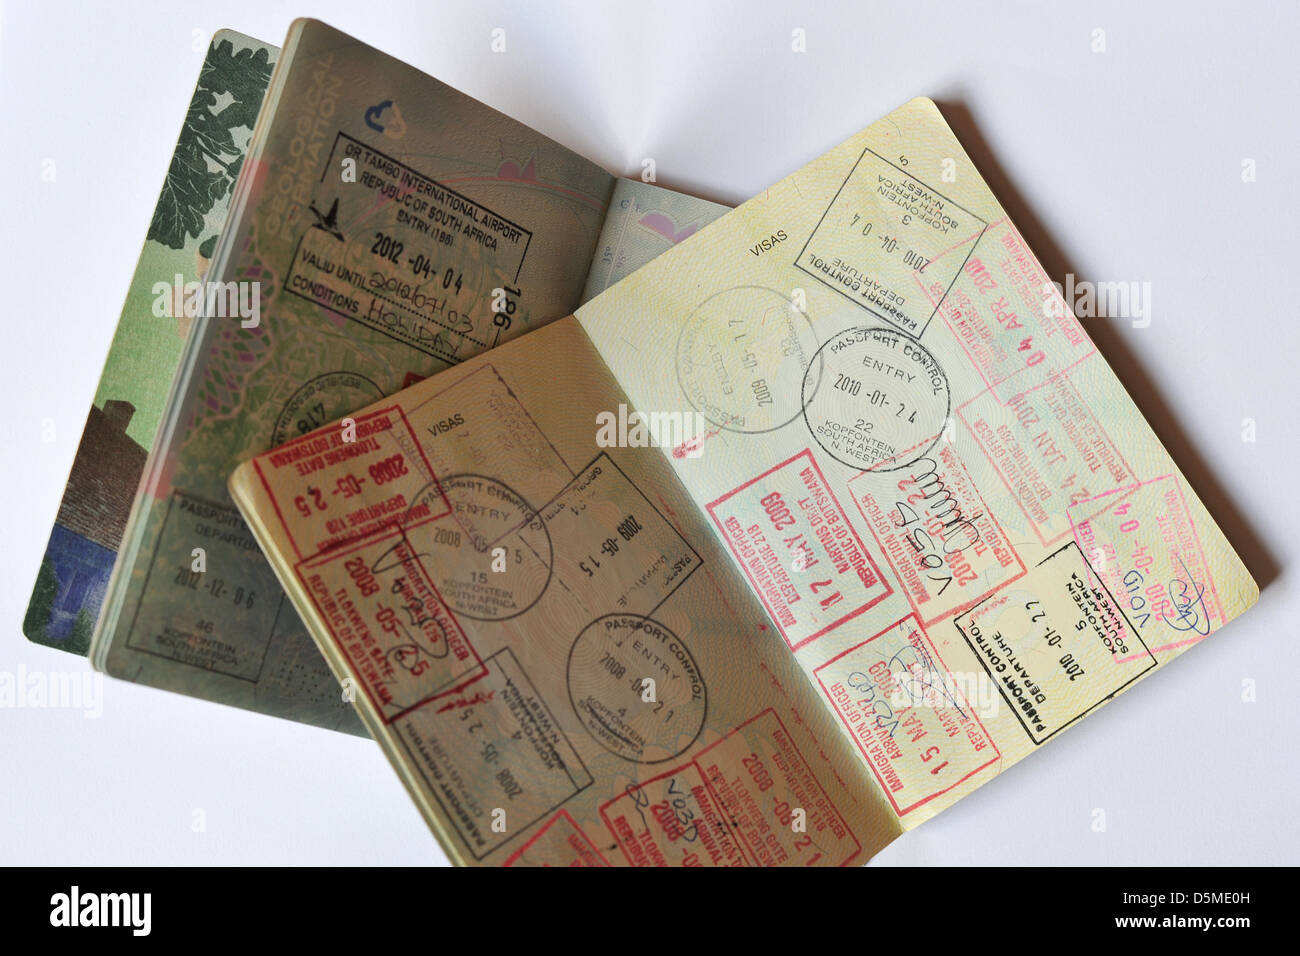 Two Passports with fully used Visa pages stamped full of Visas. - Stock Image